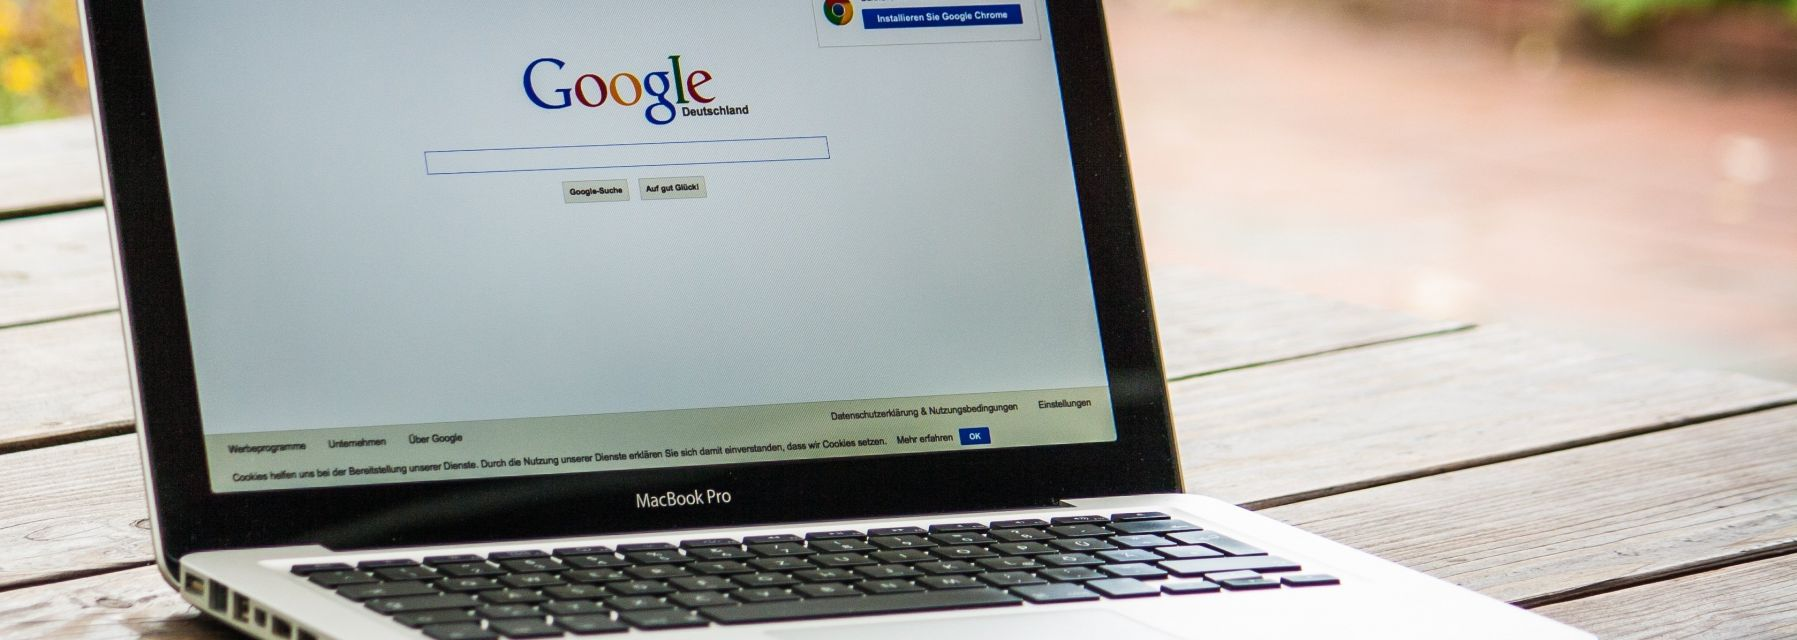 A macbook on a table showing google